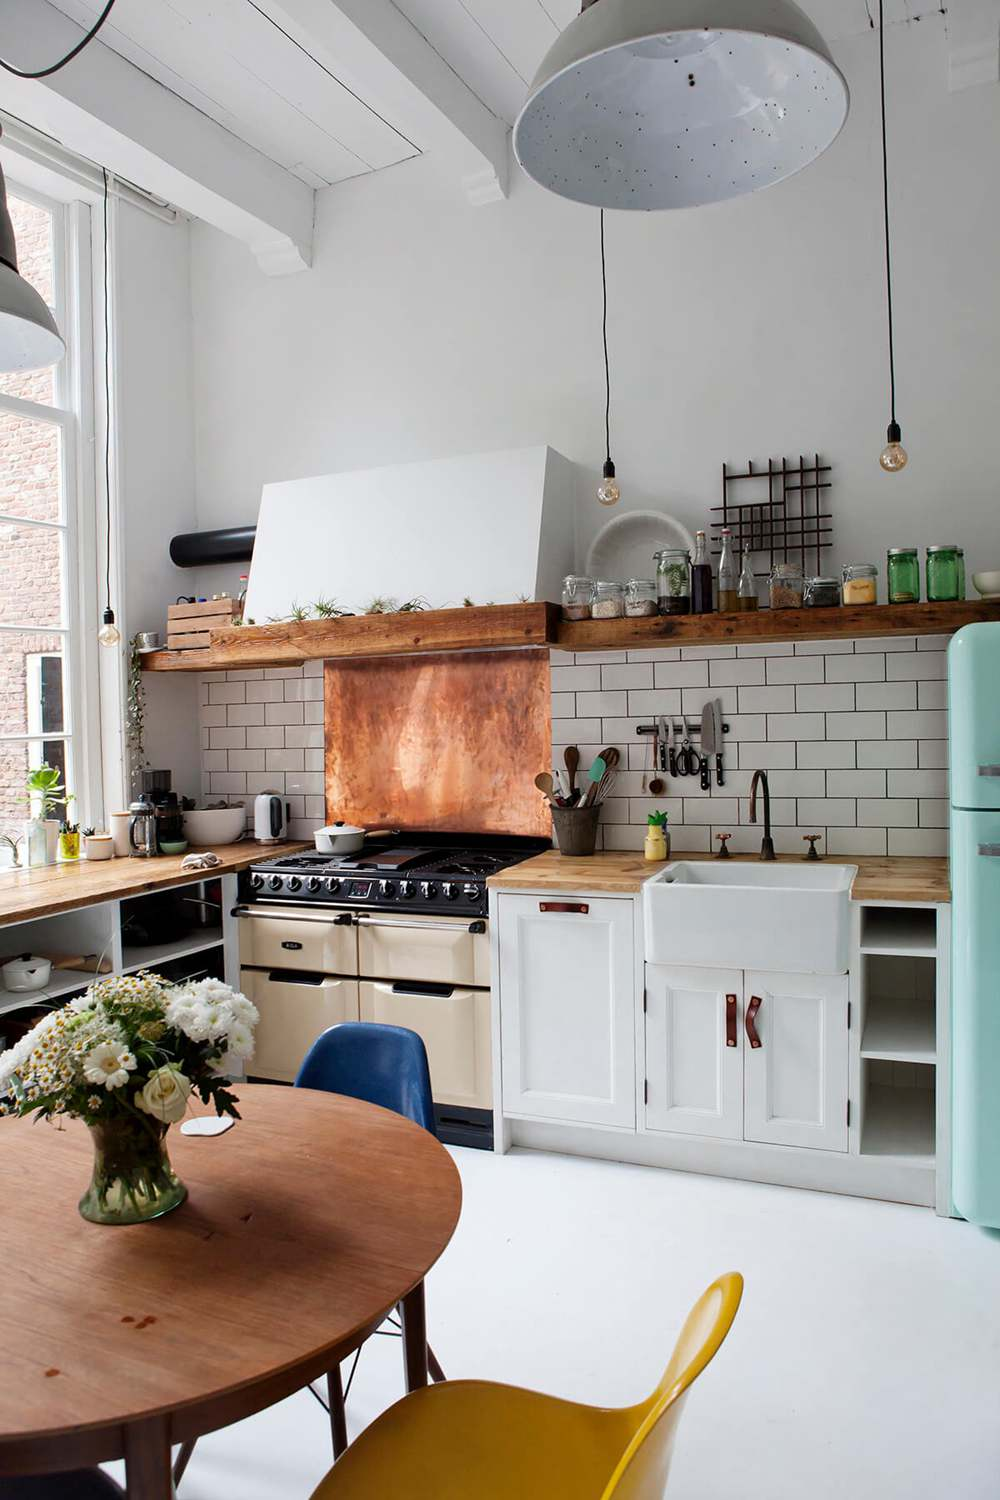 26. Beautiful Vintage Kitchen Style